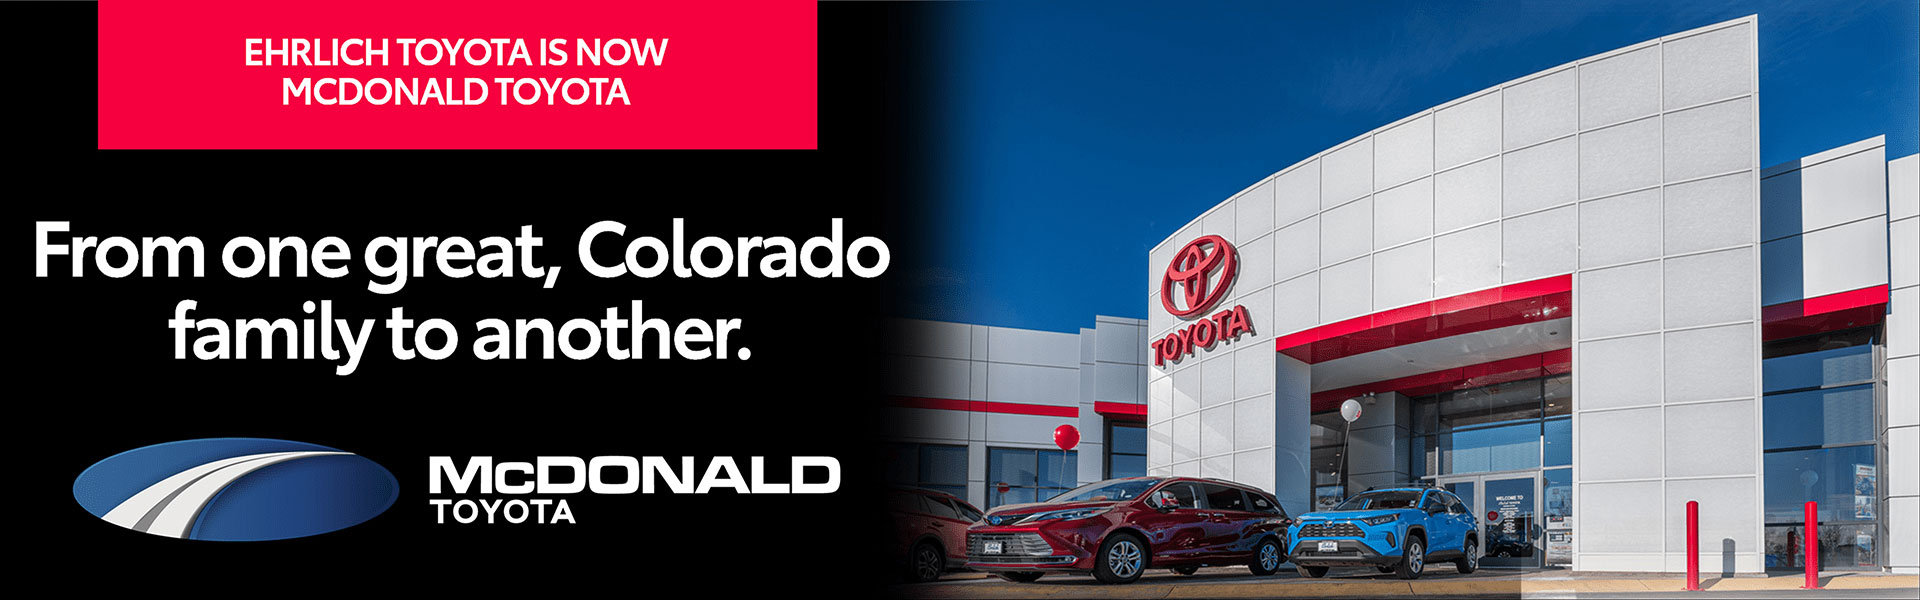 Ehrlich Toyota is now McDonald Toyota. From one great, Colorado family to another.